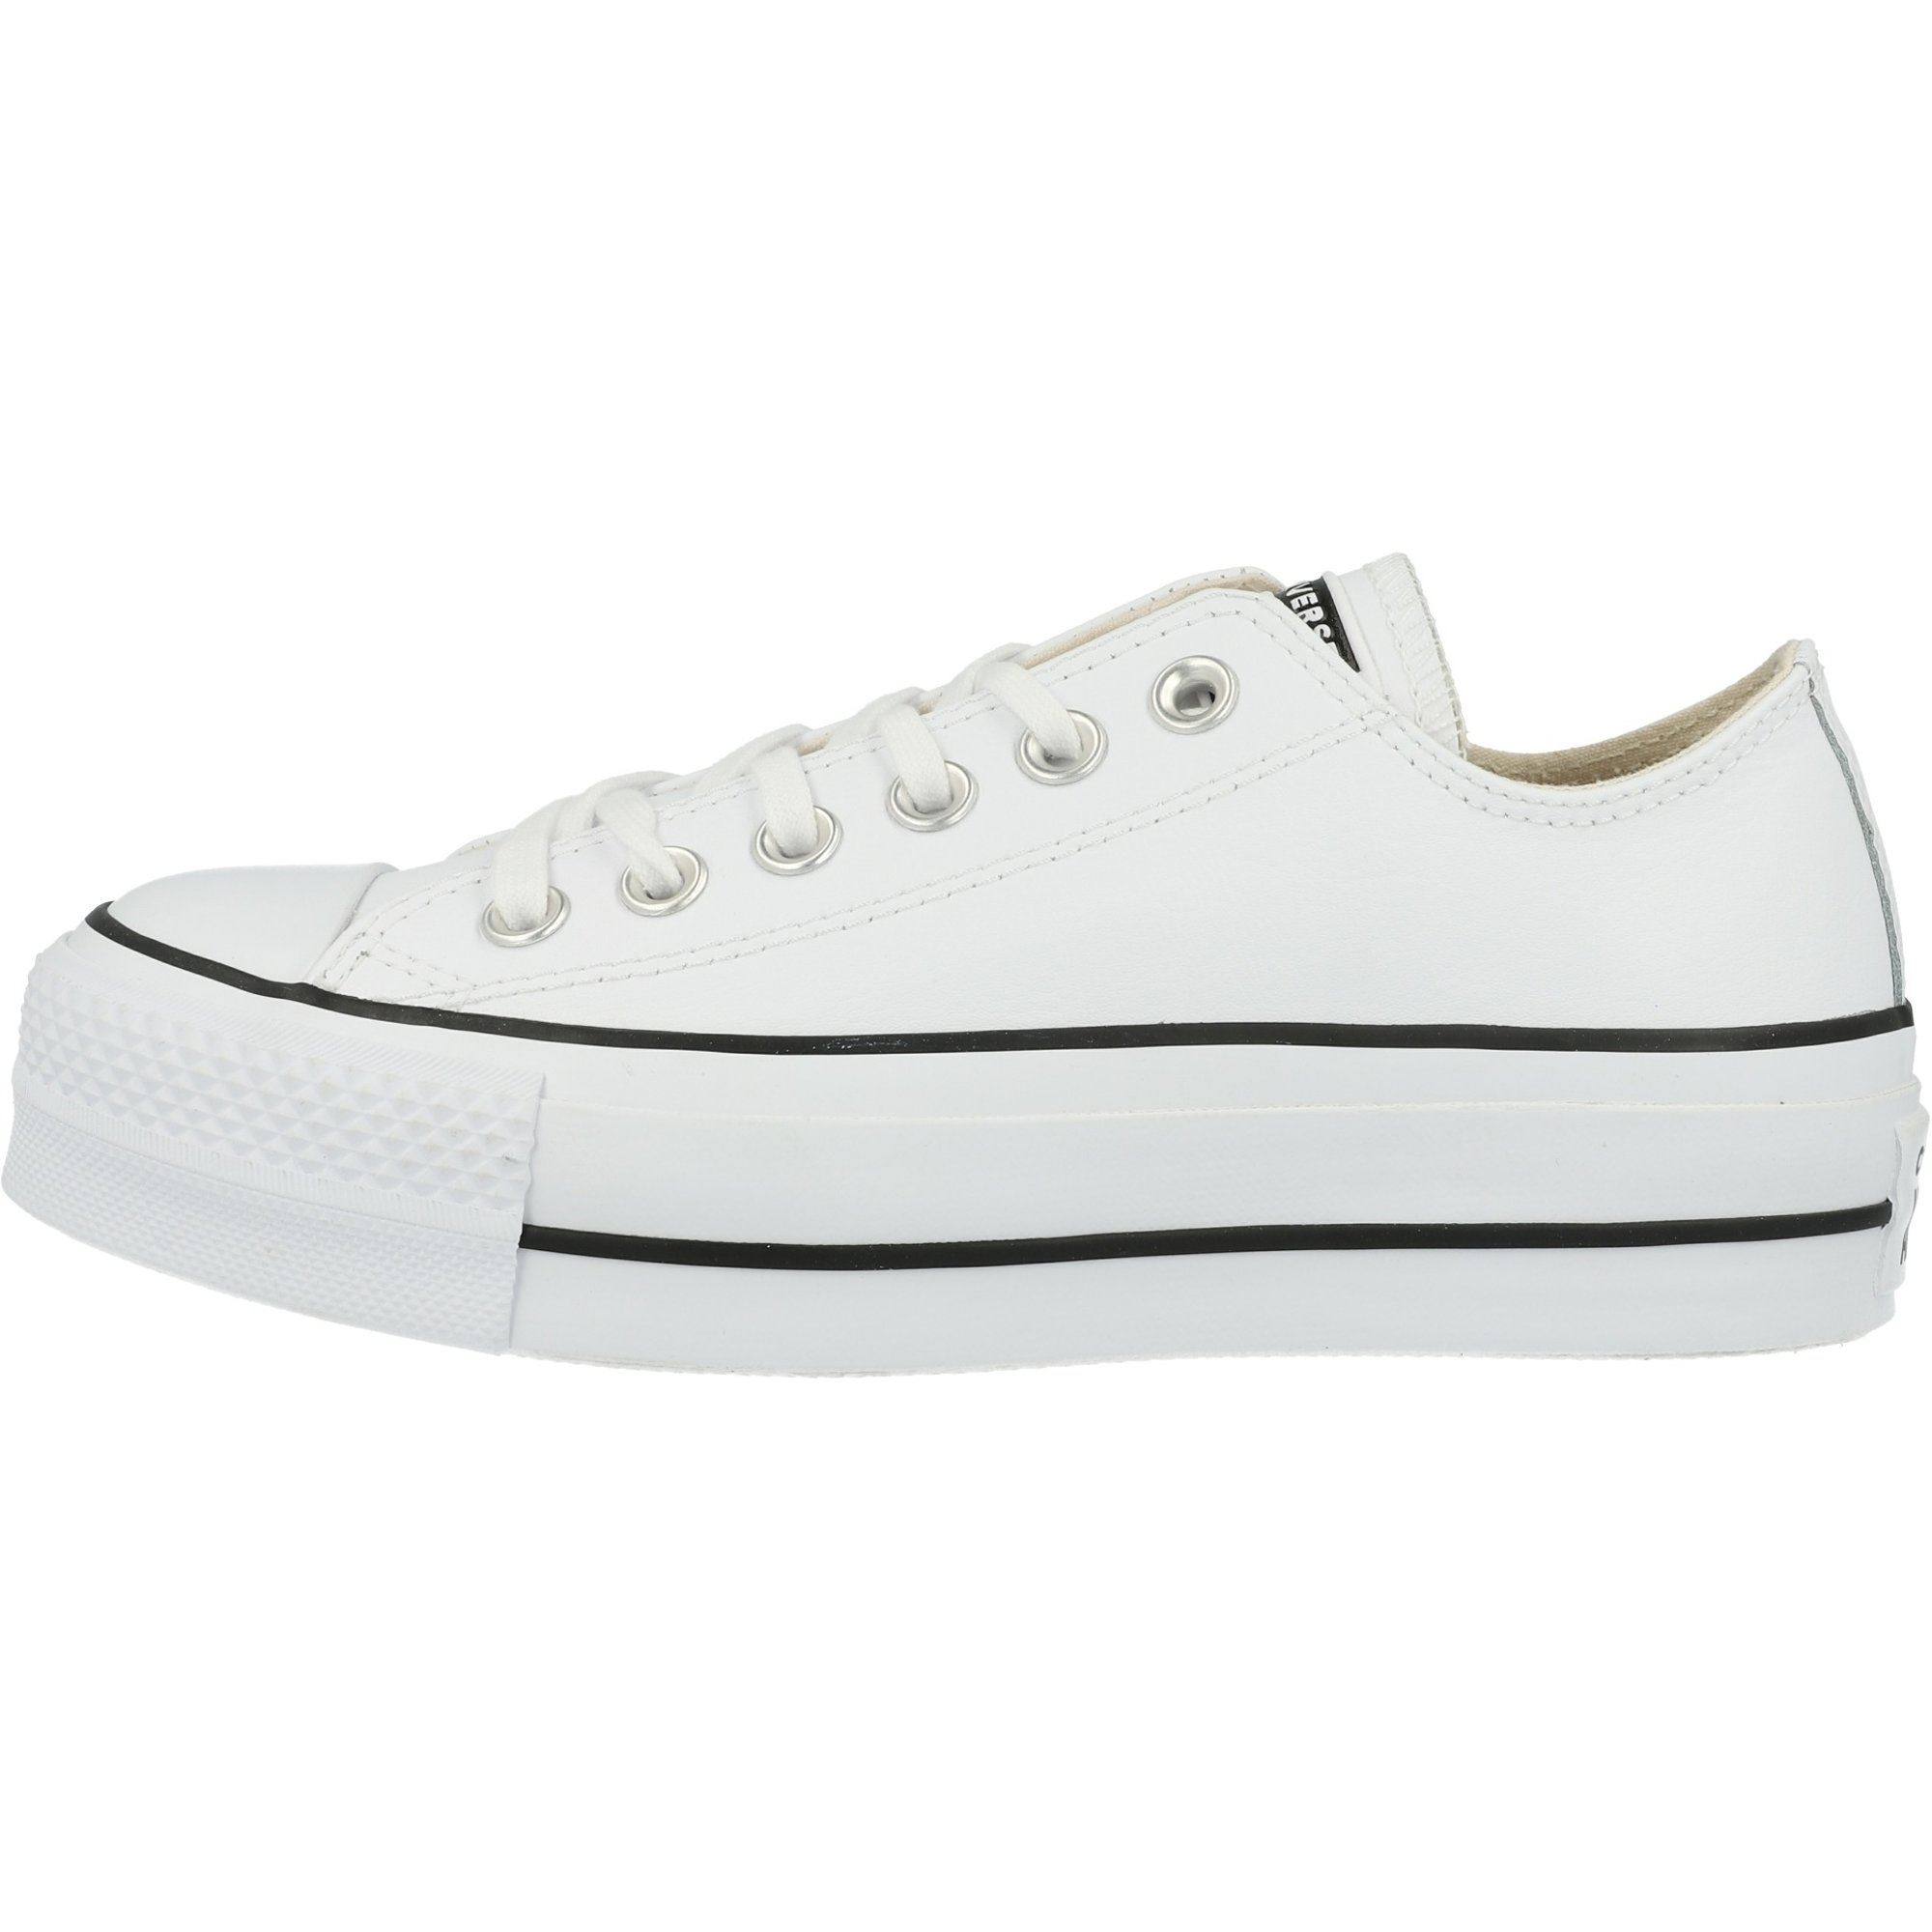 Converse Chuck Taylor All Star Lift Ox Clean White Black Leather Trainers Shoes Awesome Shoes